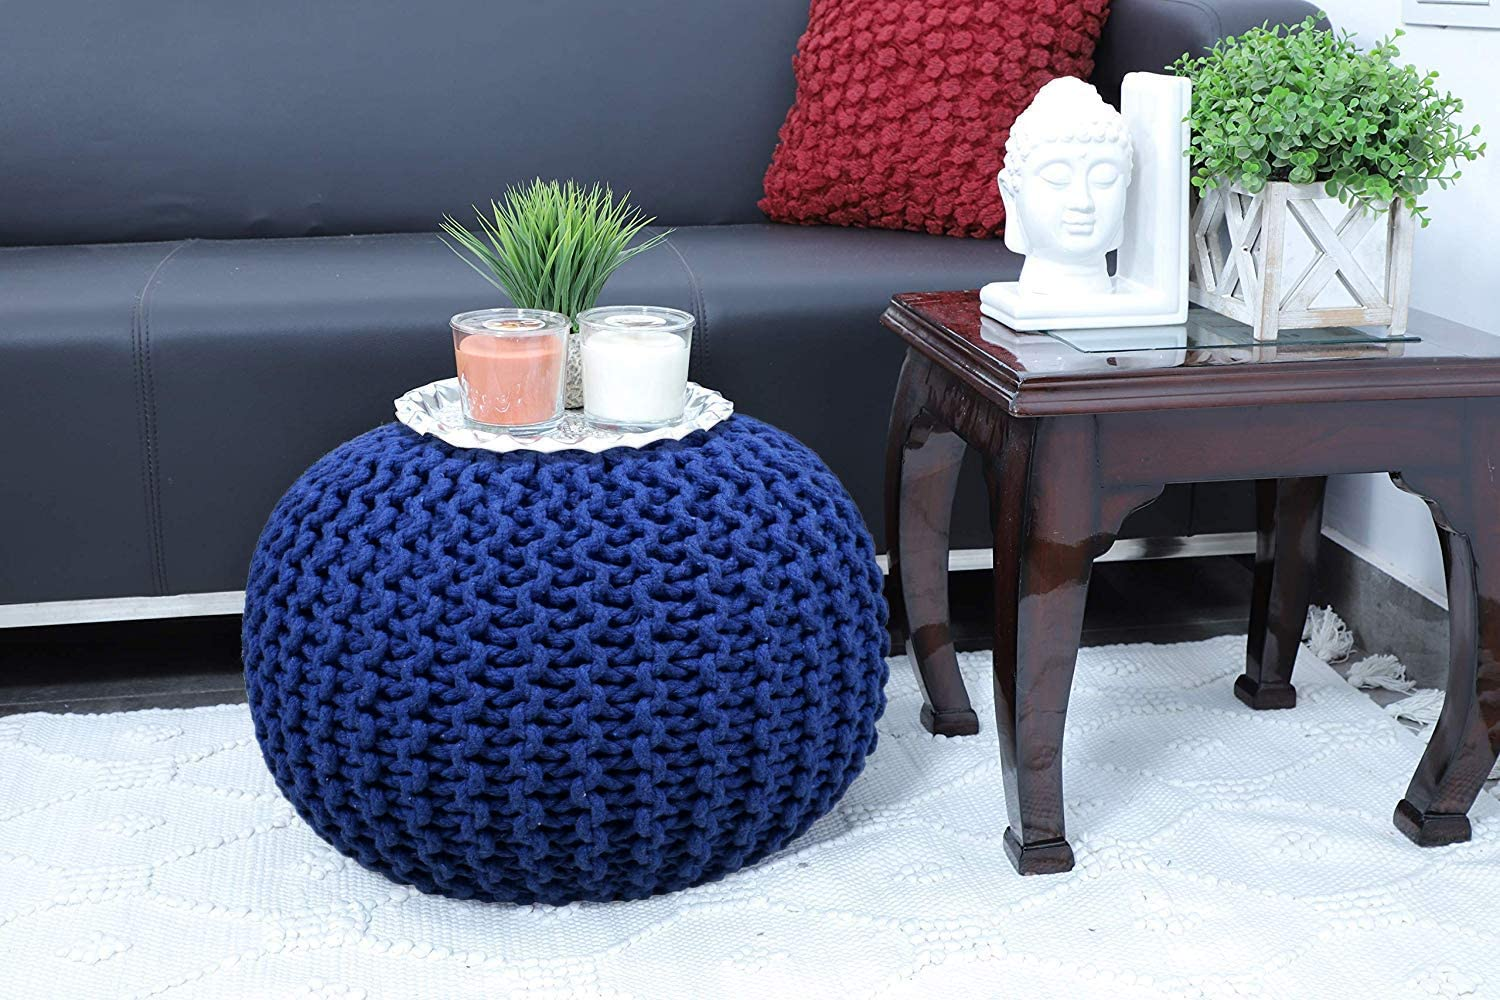 23 X 16 inch RAJRANG BRINGING RAJASTHAN TO YOU Pure Cotton Stuffed Pouf Hand Knitted Braided Cotton Cord Round Ottoman Small Space Bedroom Decorative Seating Blue